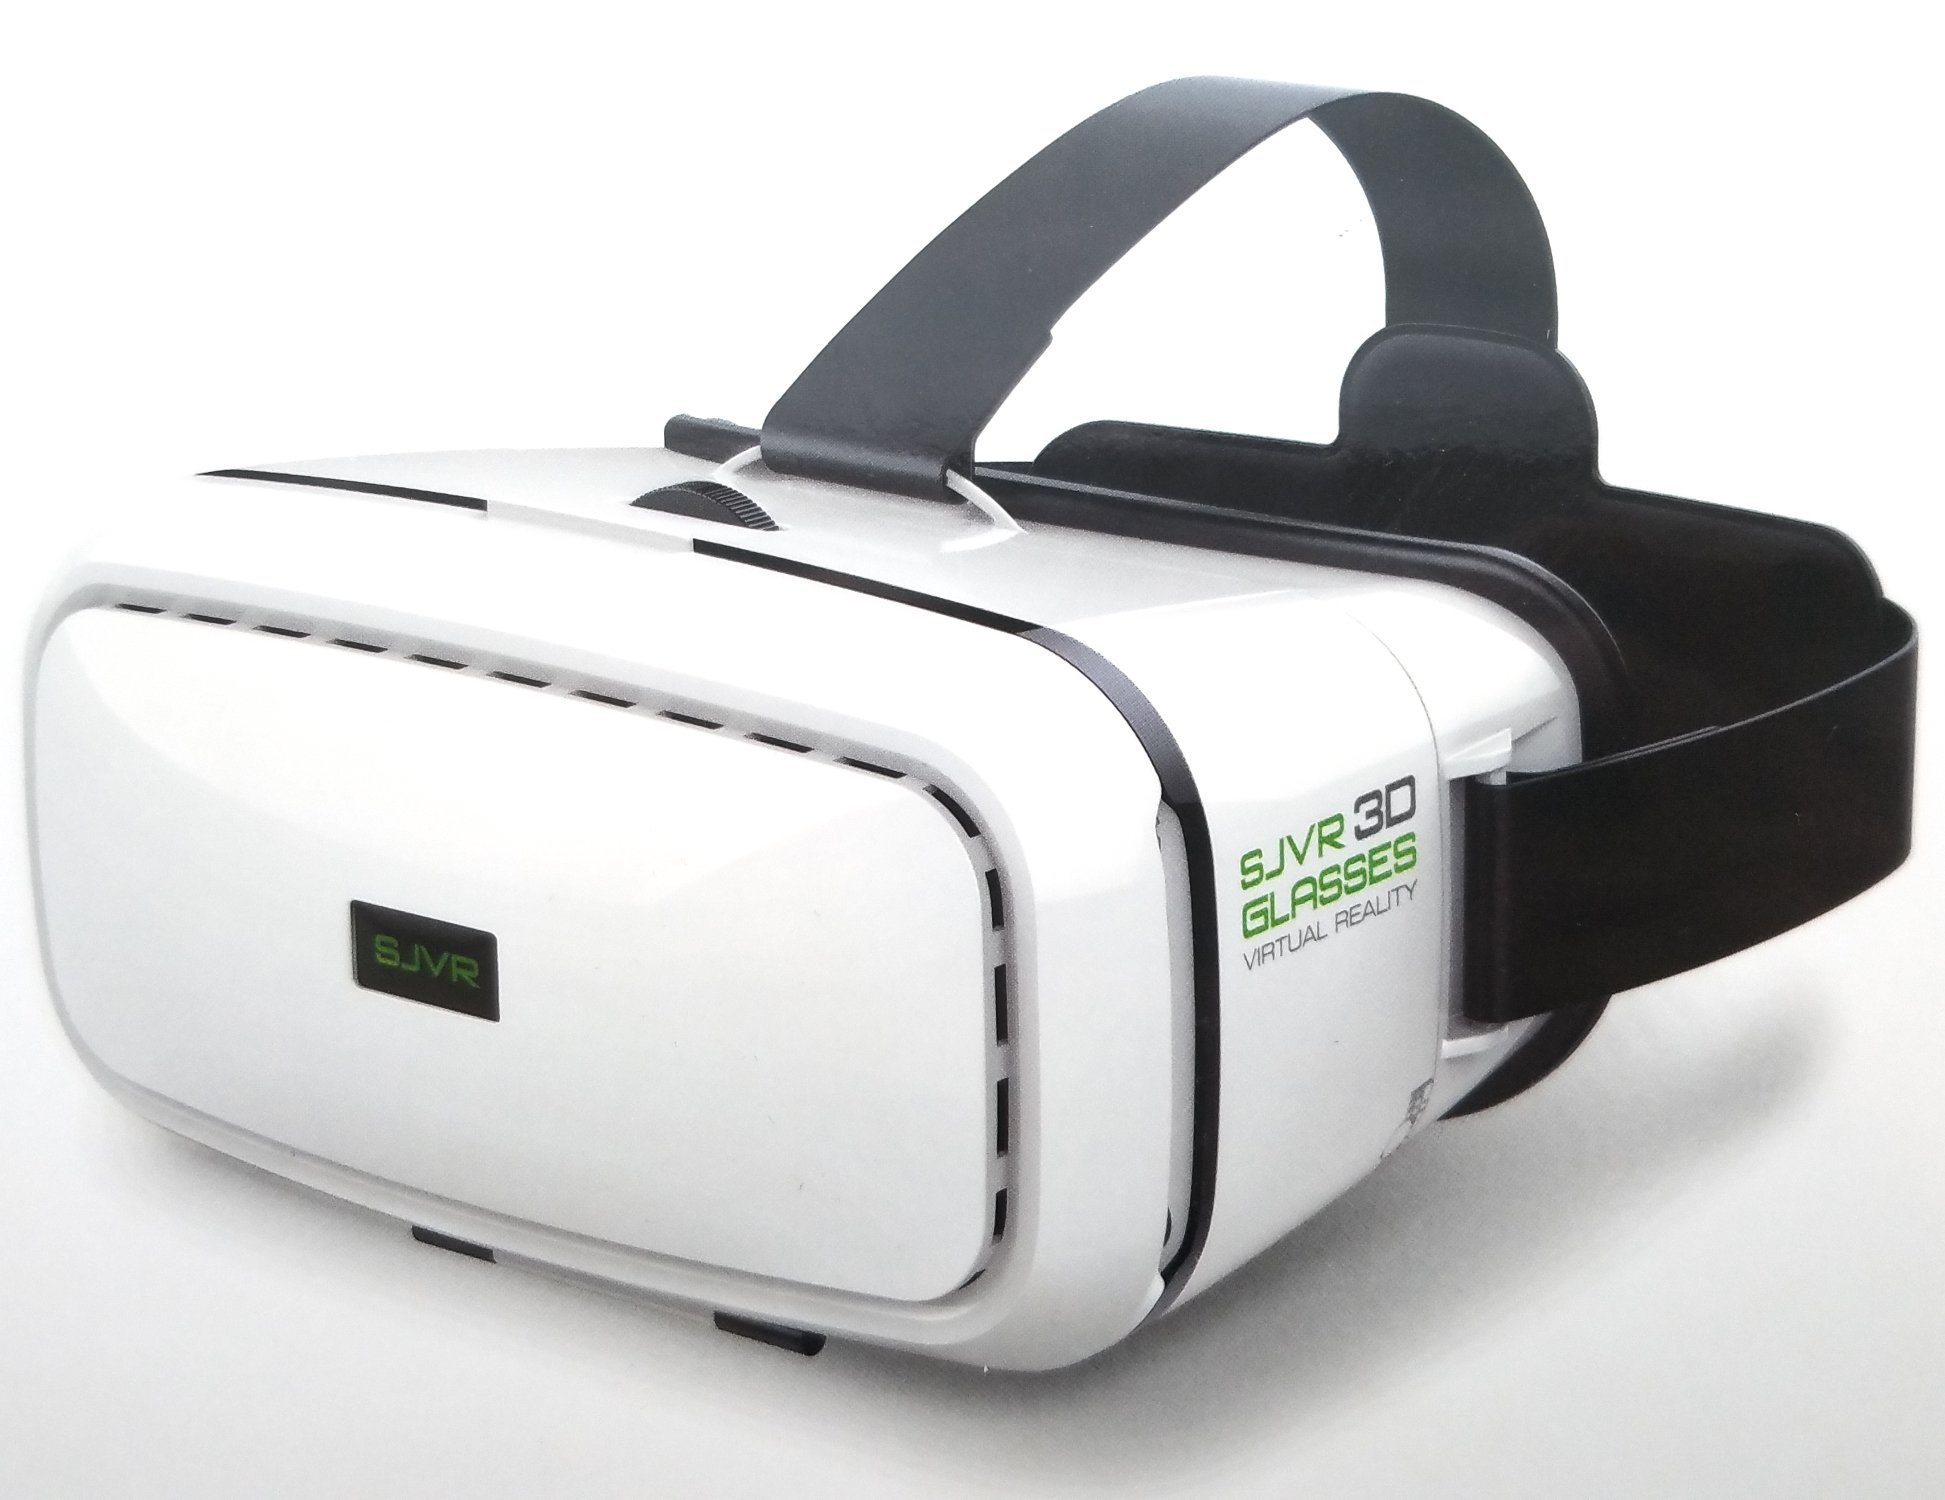 Haktoys HAK900-VR Virtual Reality Headset 3D Viewer for 360-Degree Movies and Games, Compatible with VR Capable RC Drones/Quadcopters and for iPhones X/7/6S/6/5, Samsung, Google & Android Smartphones